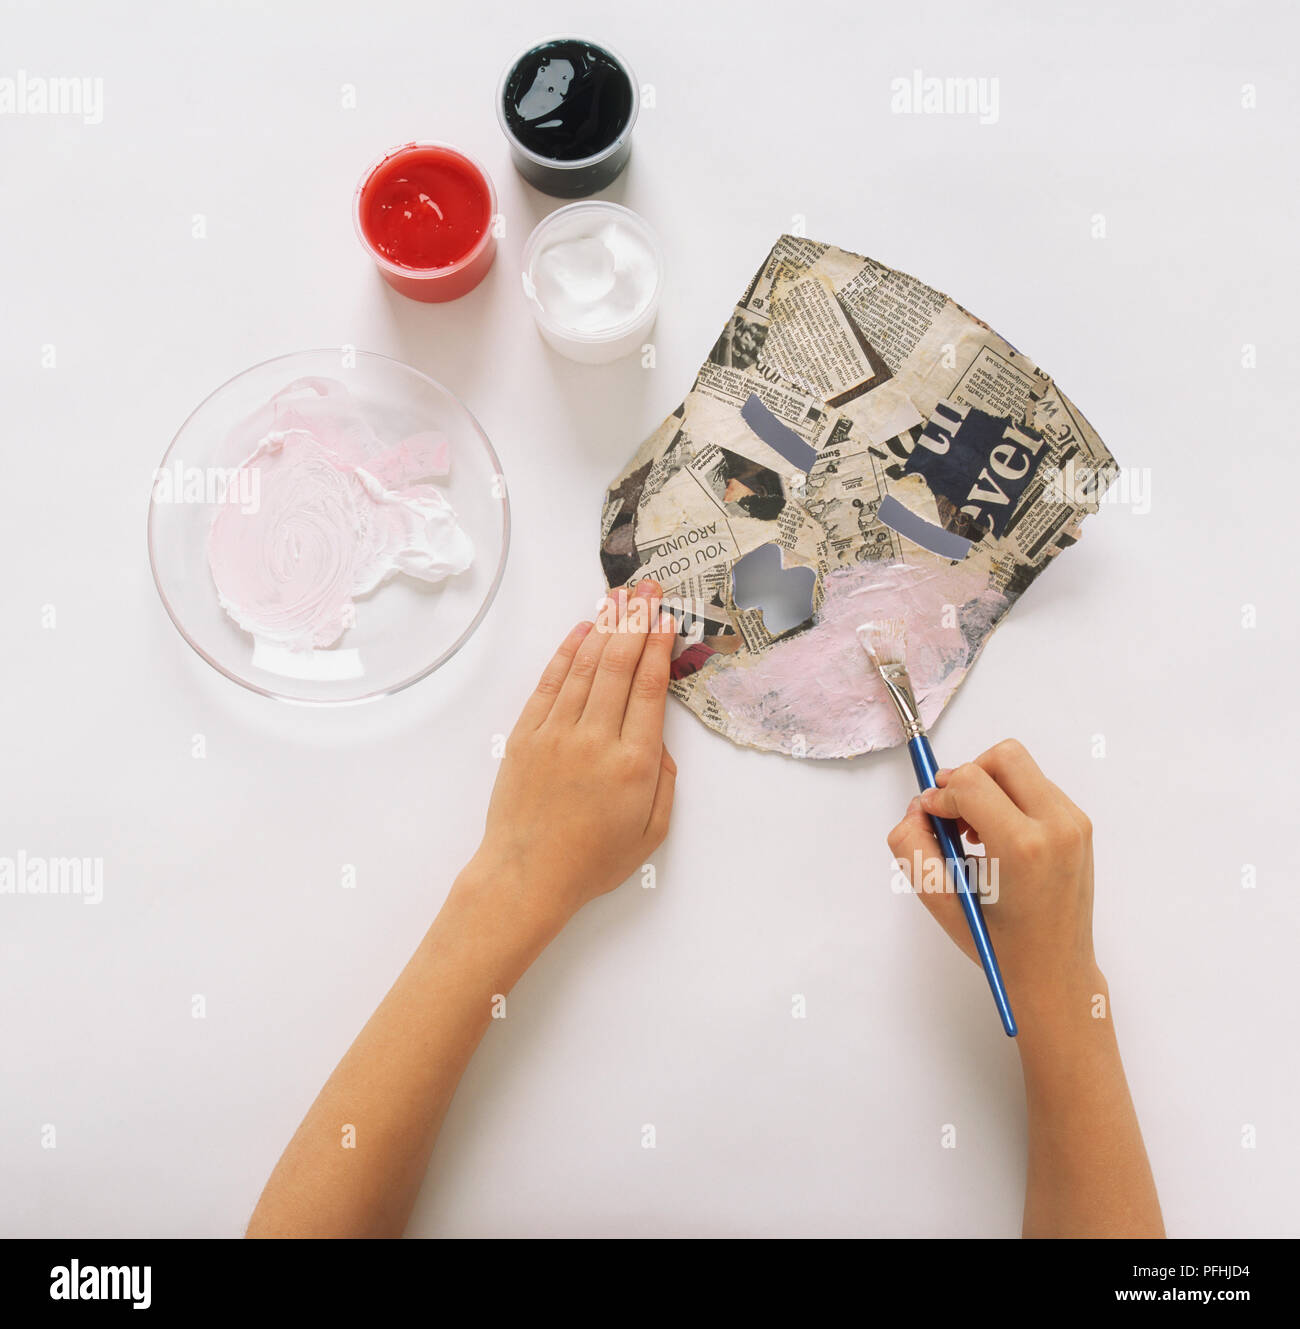 Forum on this topic: How to Paint Papier Mâché, how-to-paint-papier-m-ch/